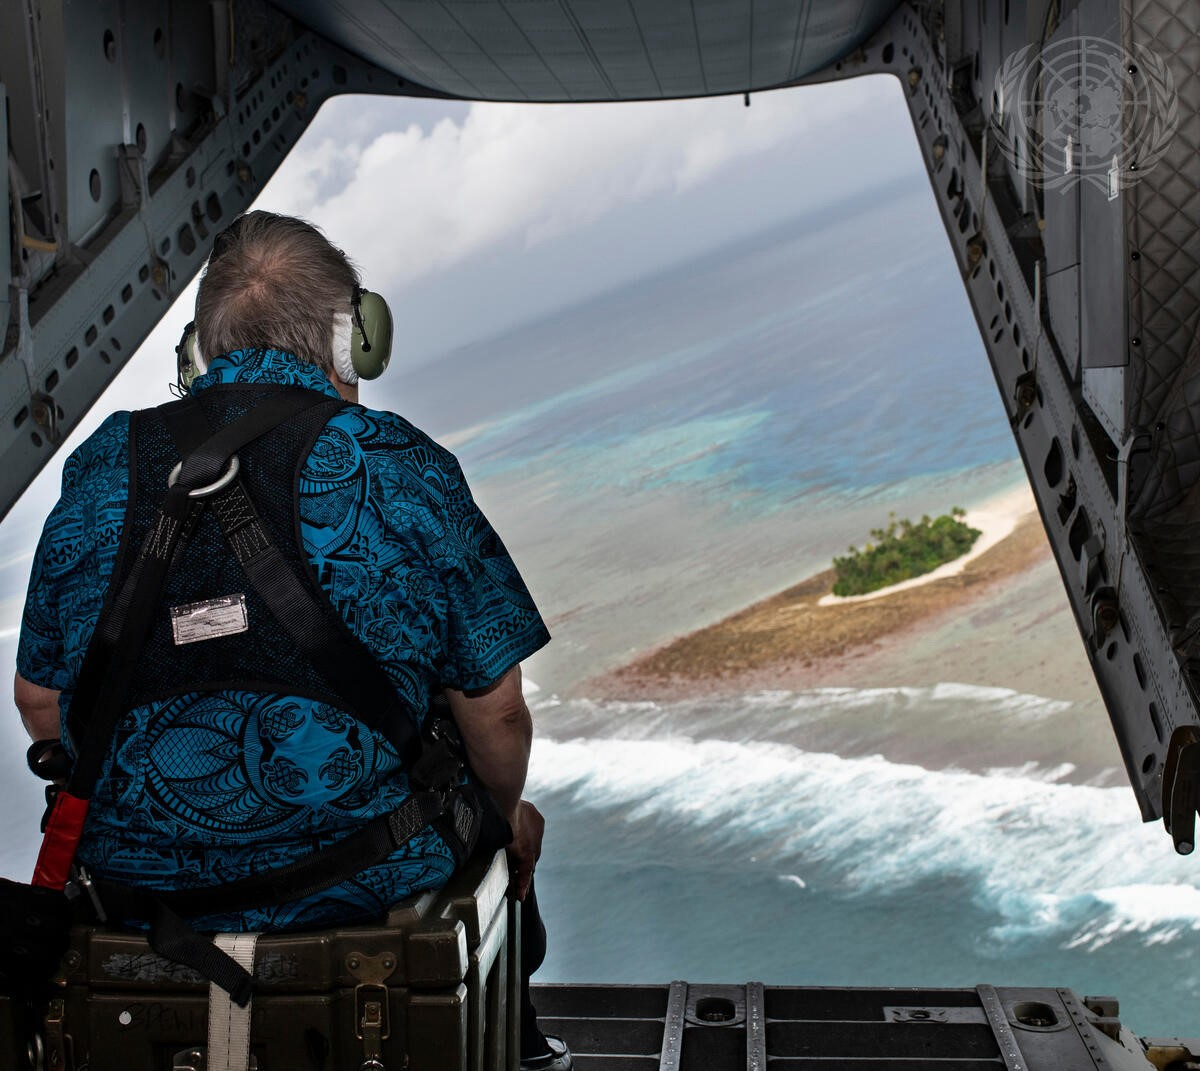 Figure 8. Secretary-General António Guterres looks out over the islands of Tuvalu from the back of the plane during his flight there in 2019. UN Photo/Mark Garten